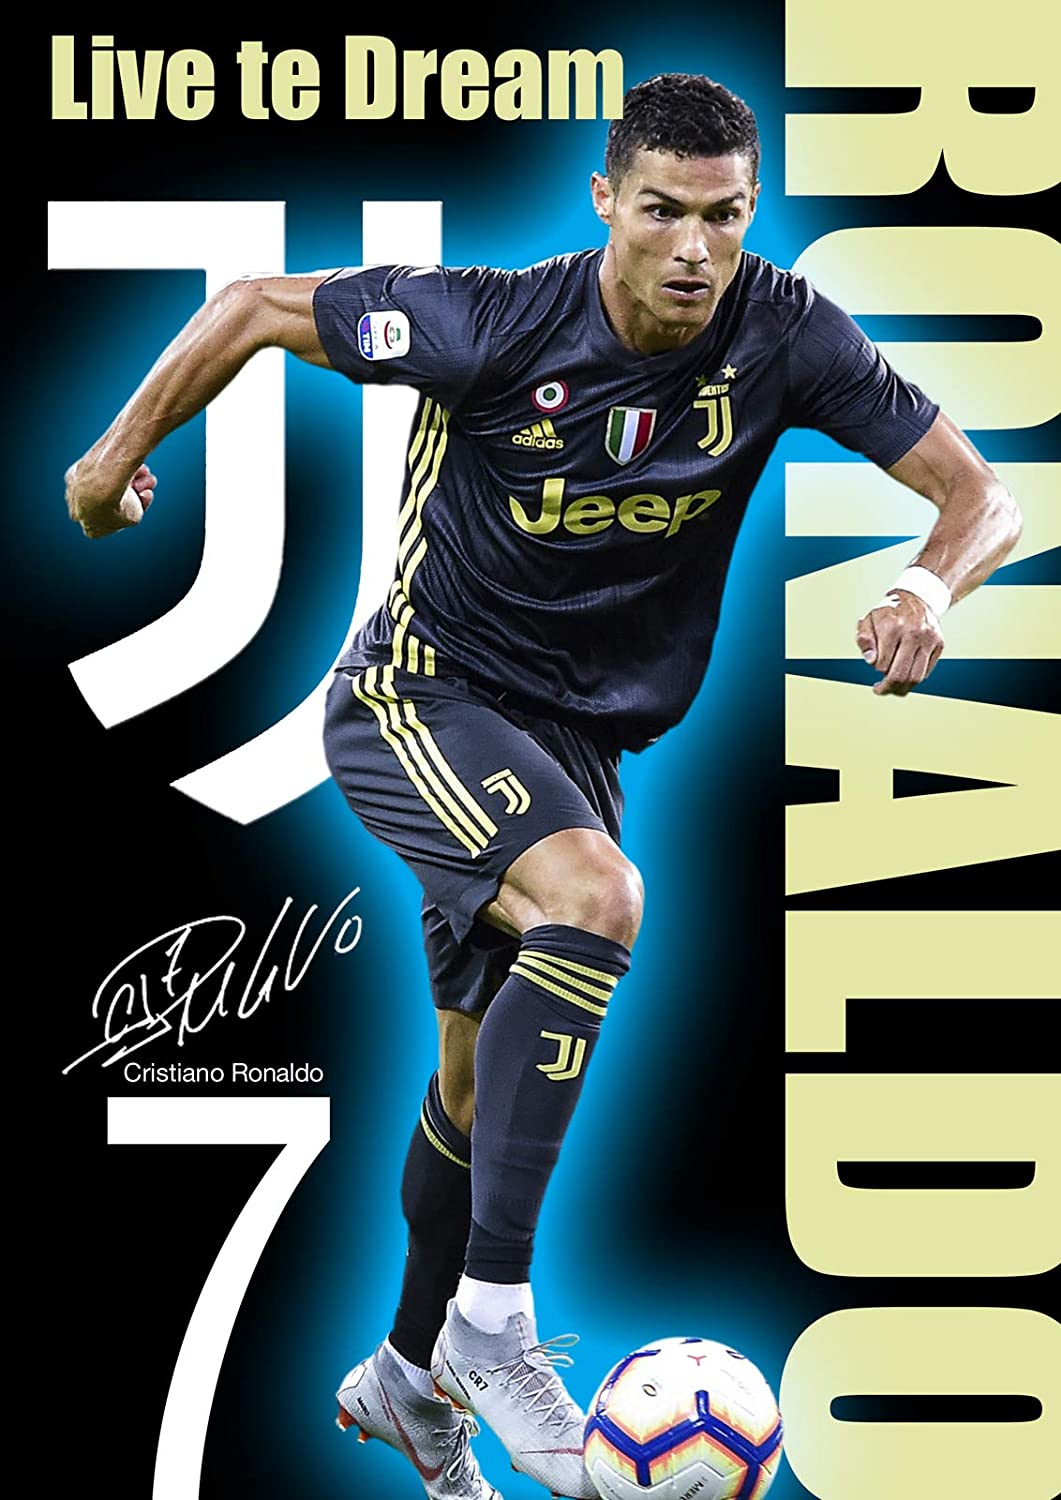 083b2afee Ronaldo Juventus Poster Motivational  10 Signed (Copy) - 2018 A3  Poster Wall Art Print A3-420mm x 297mm